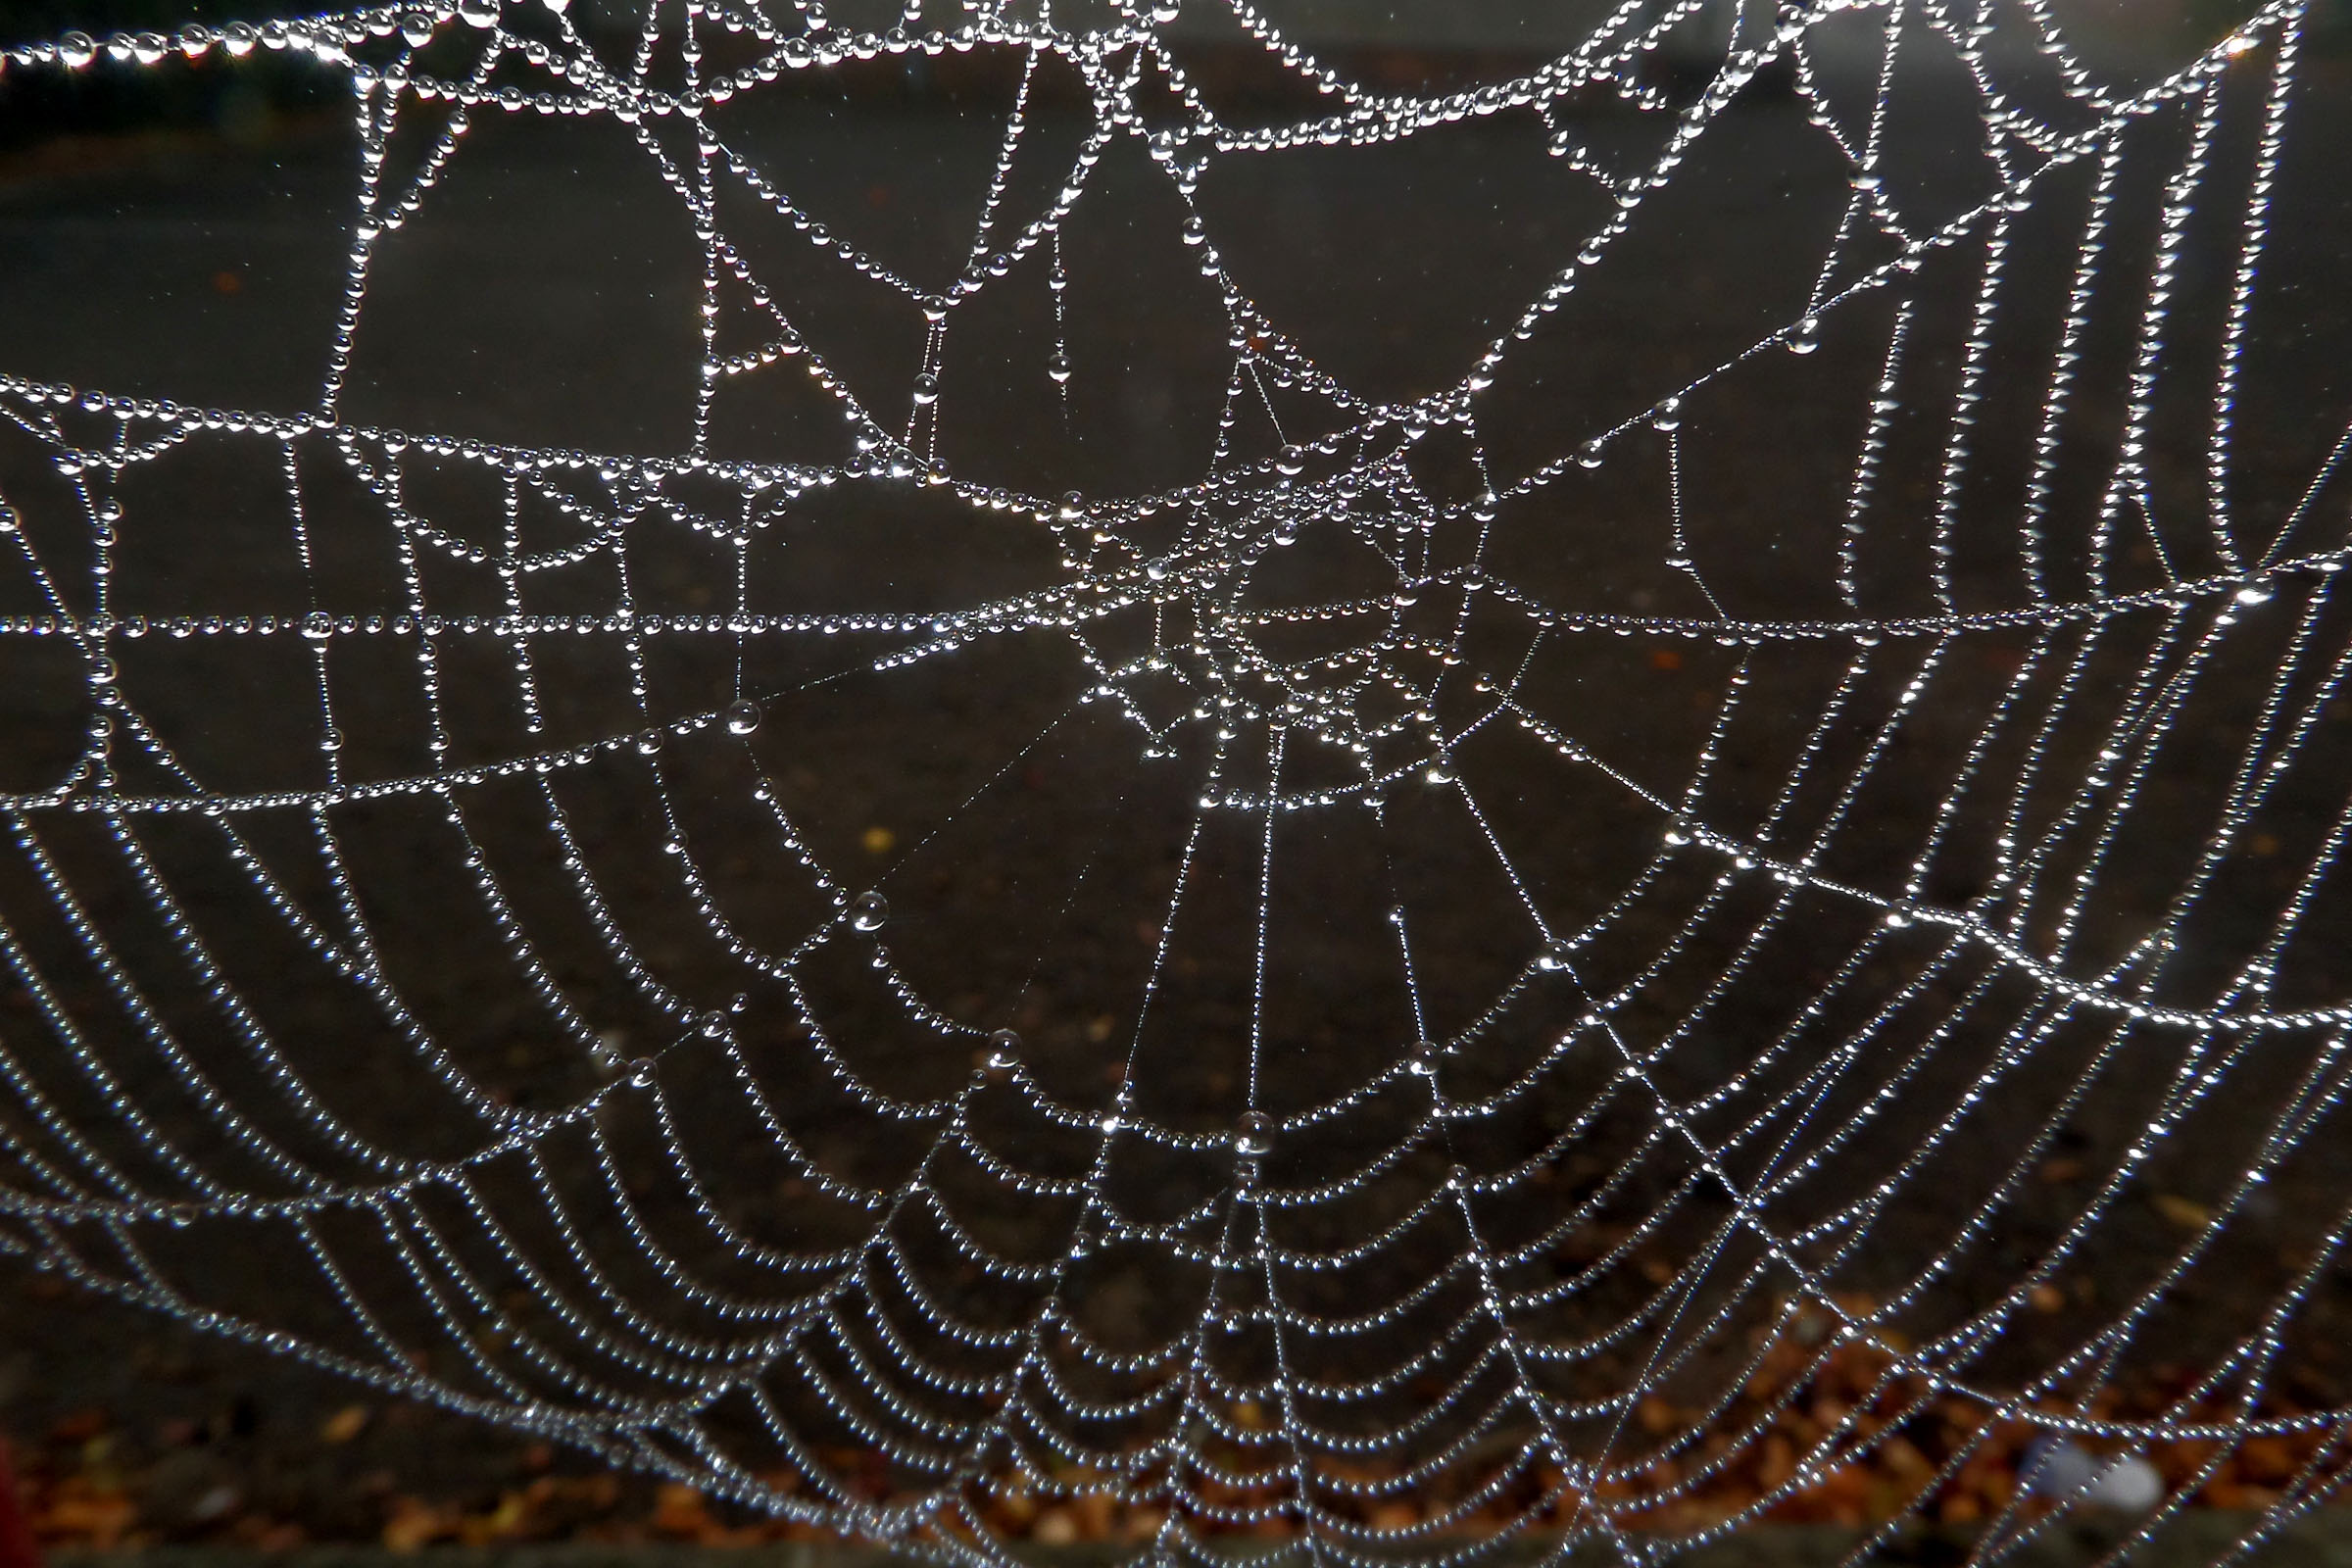 Dew soaked spiders web photo